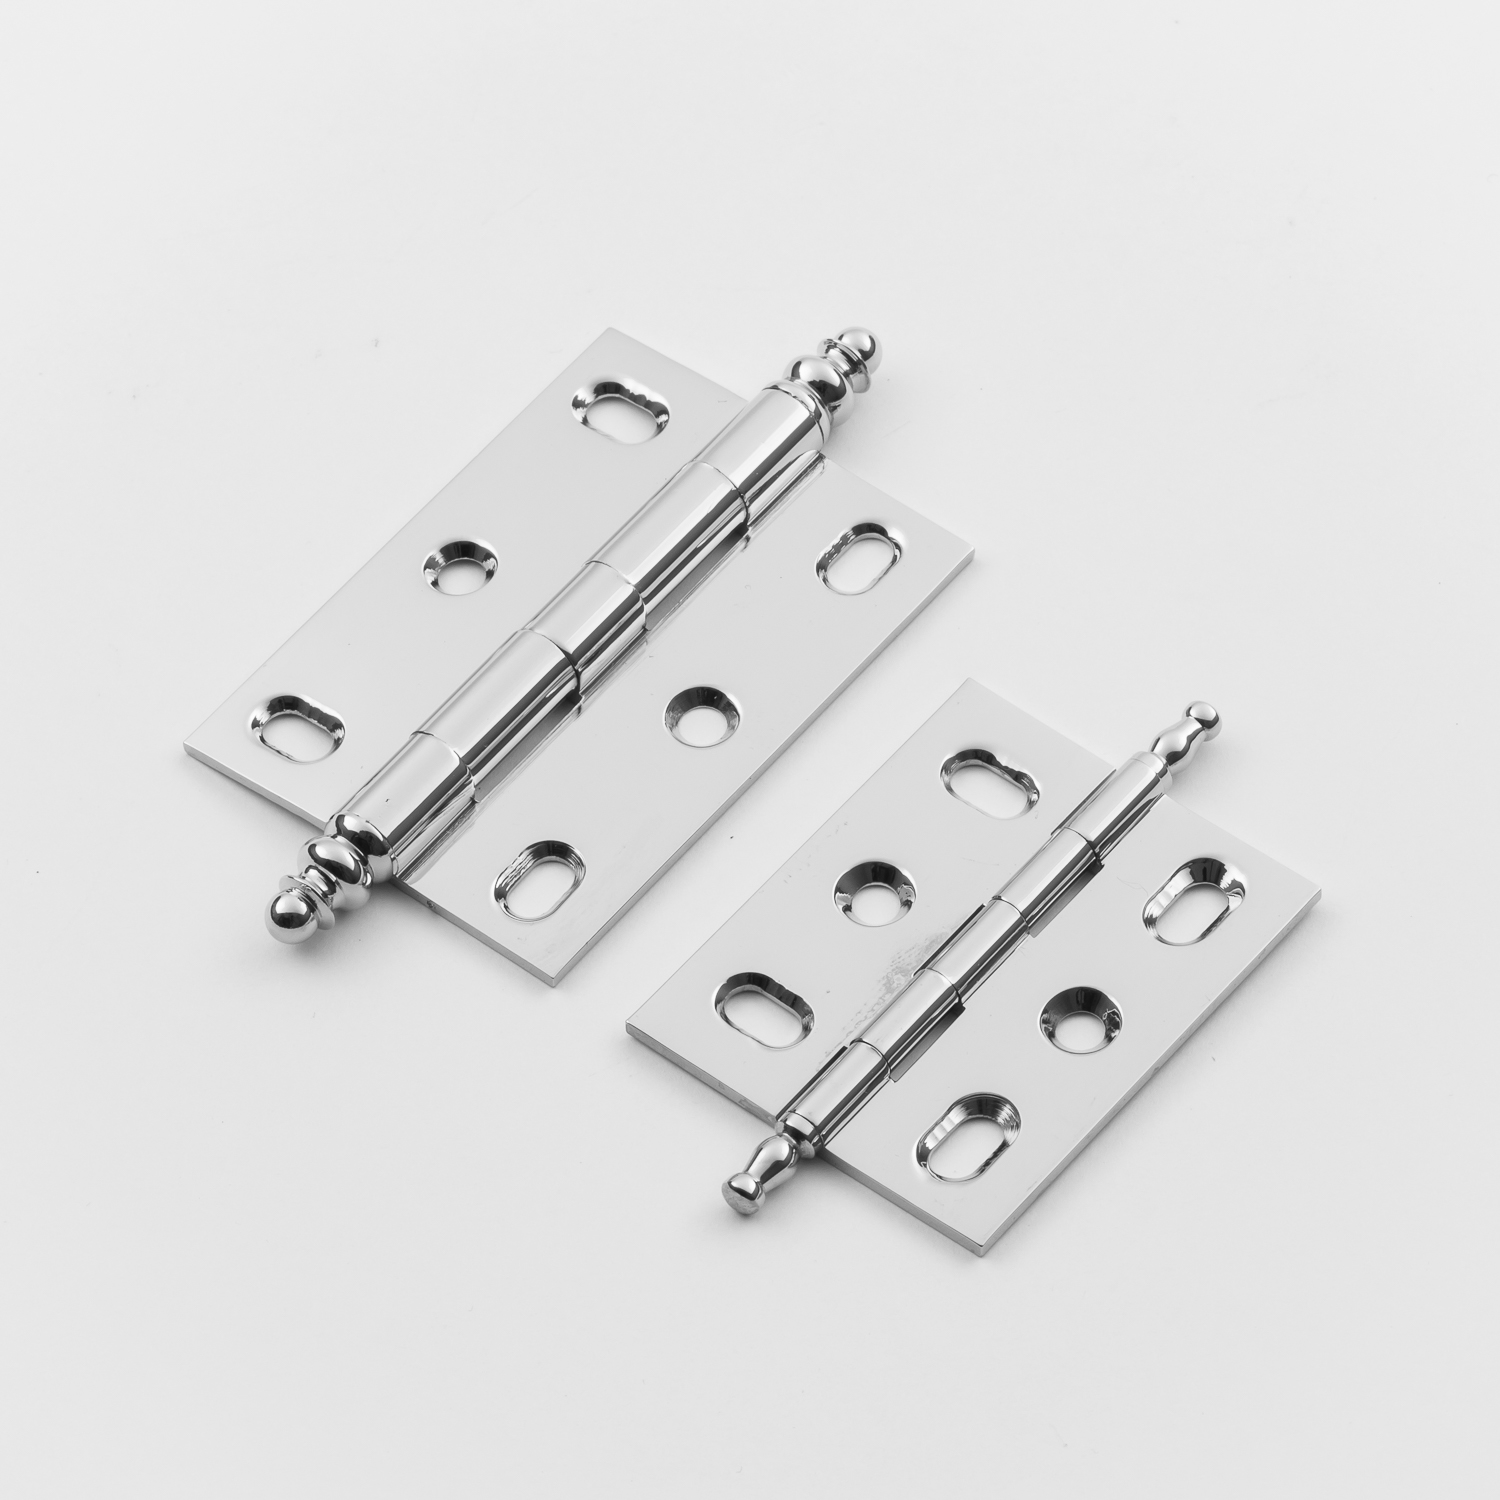 Solid Brass Decorative Door Hardware And Cabinet Hardware